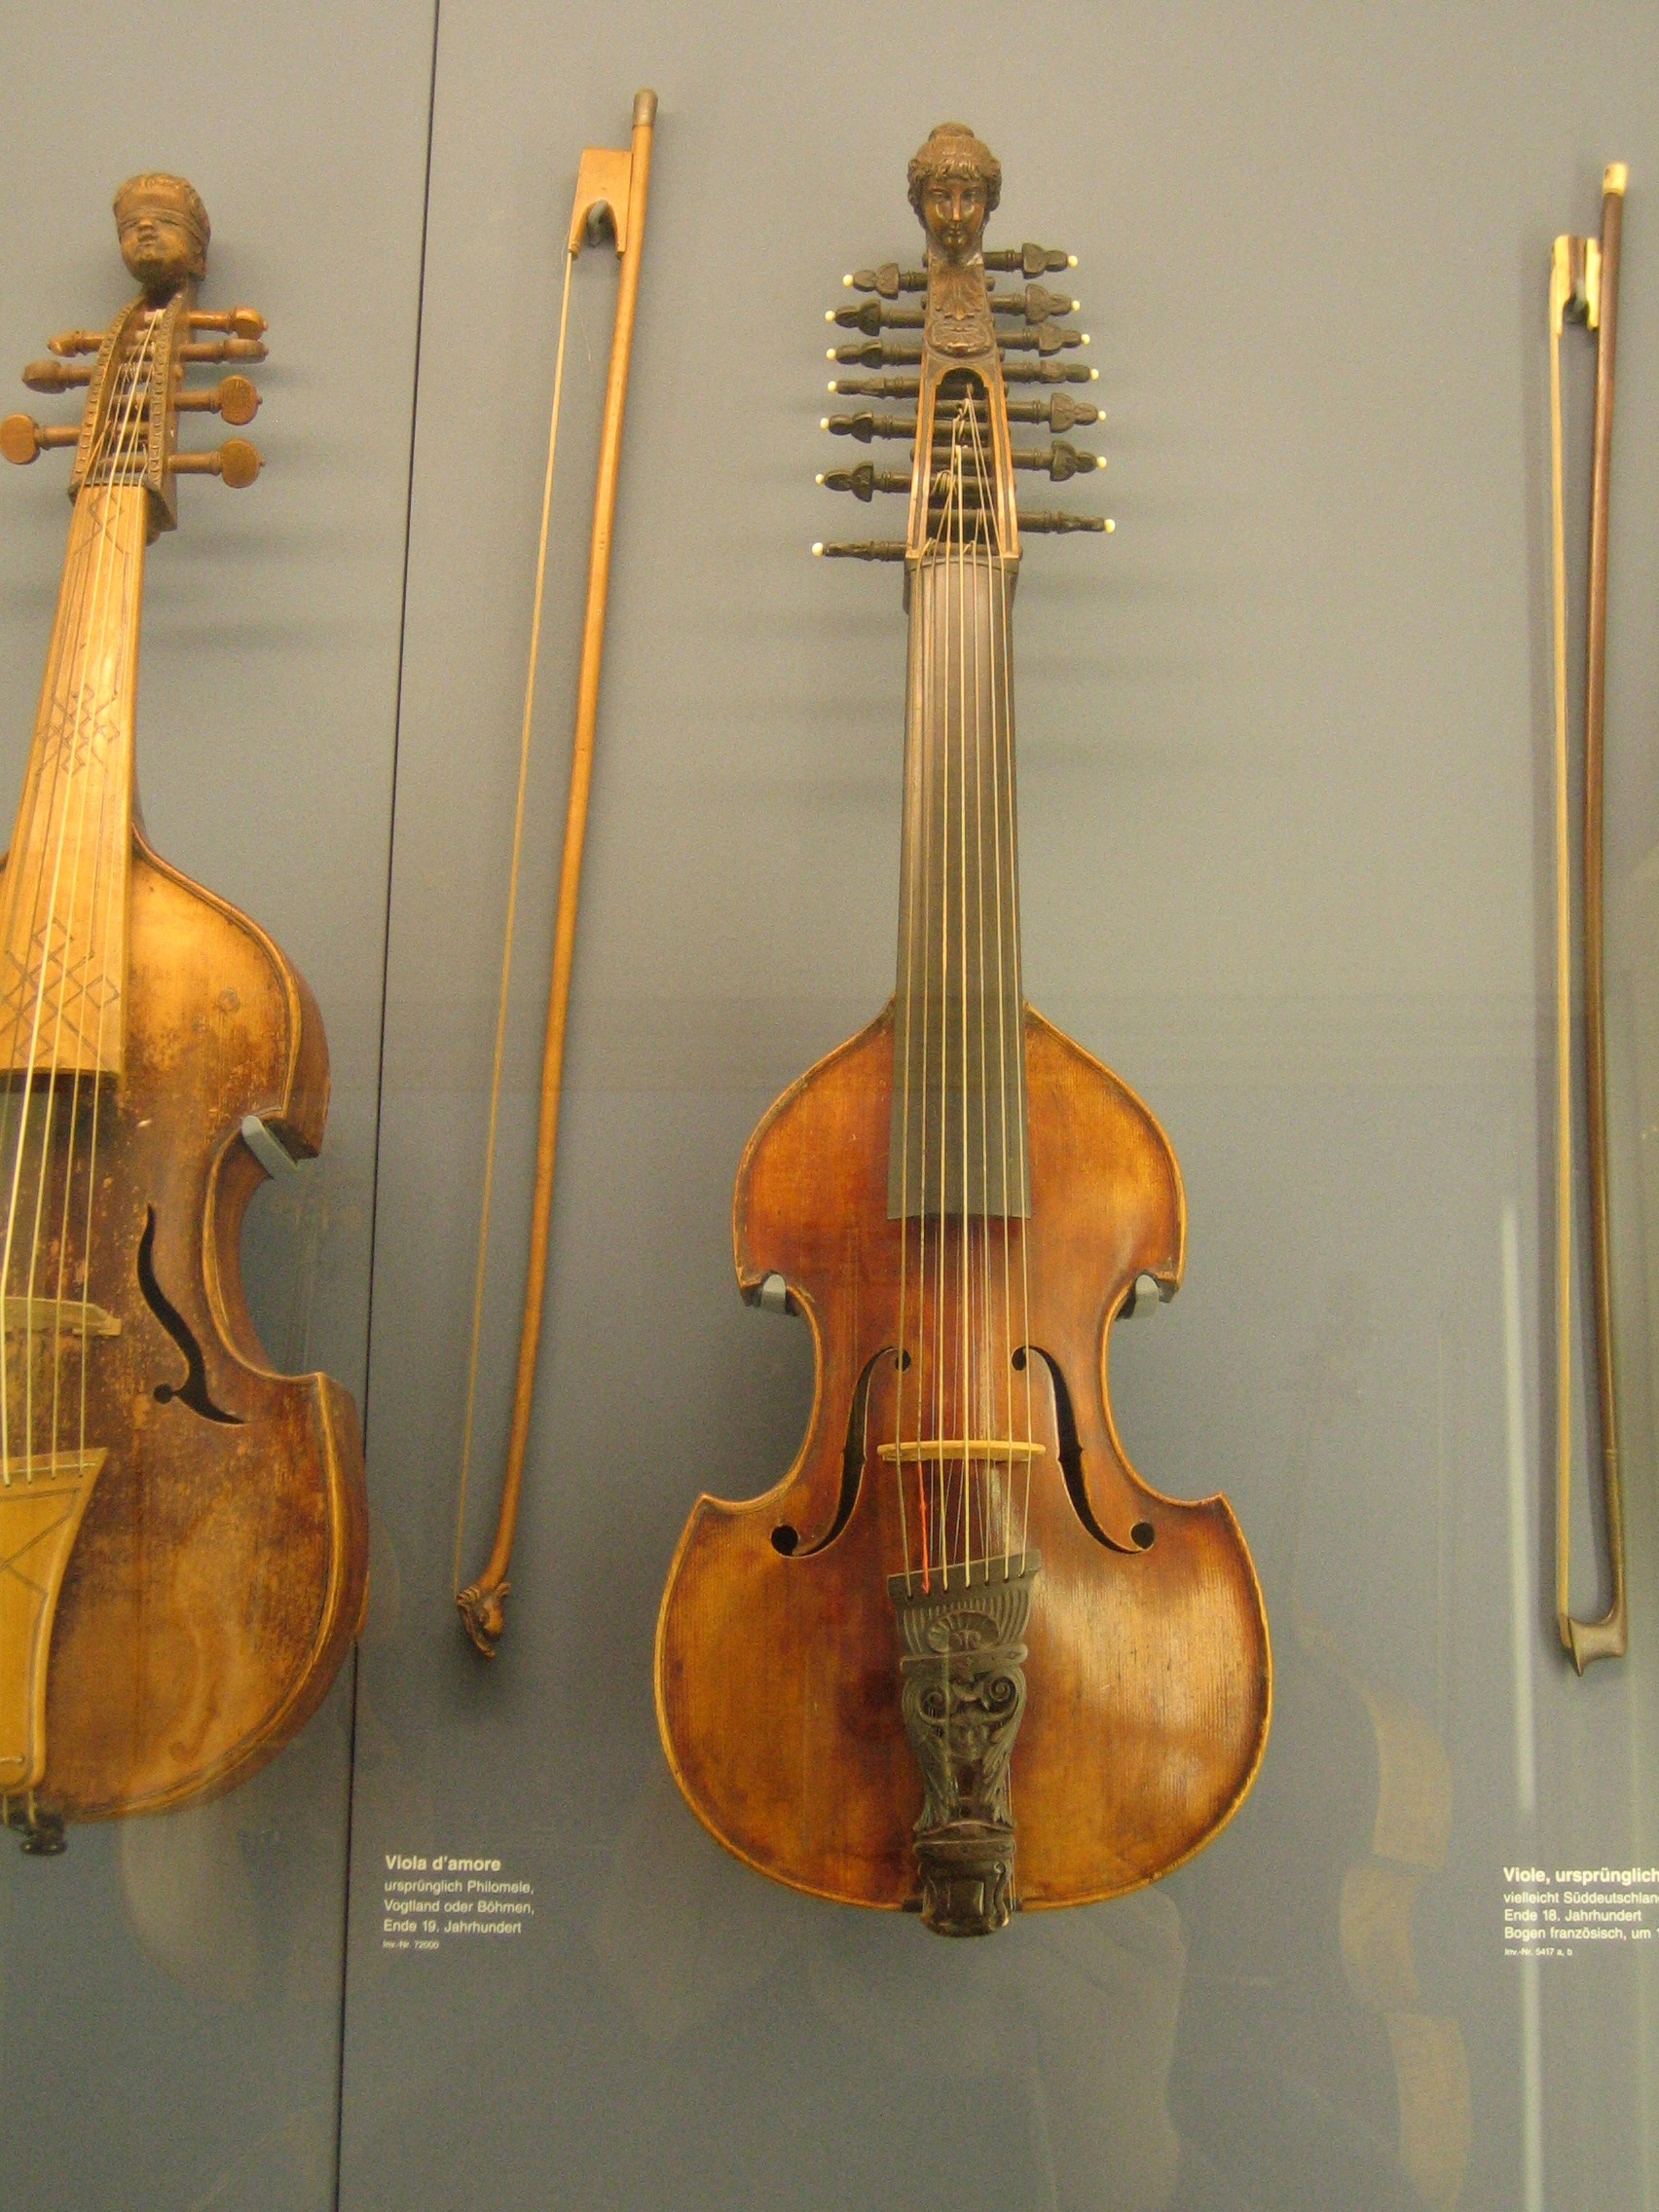 File:Viola d'Amore 1, Deutsches Museum.jpg - Wikimedia Commons